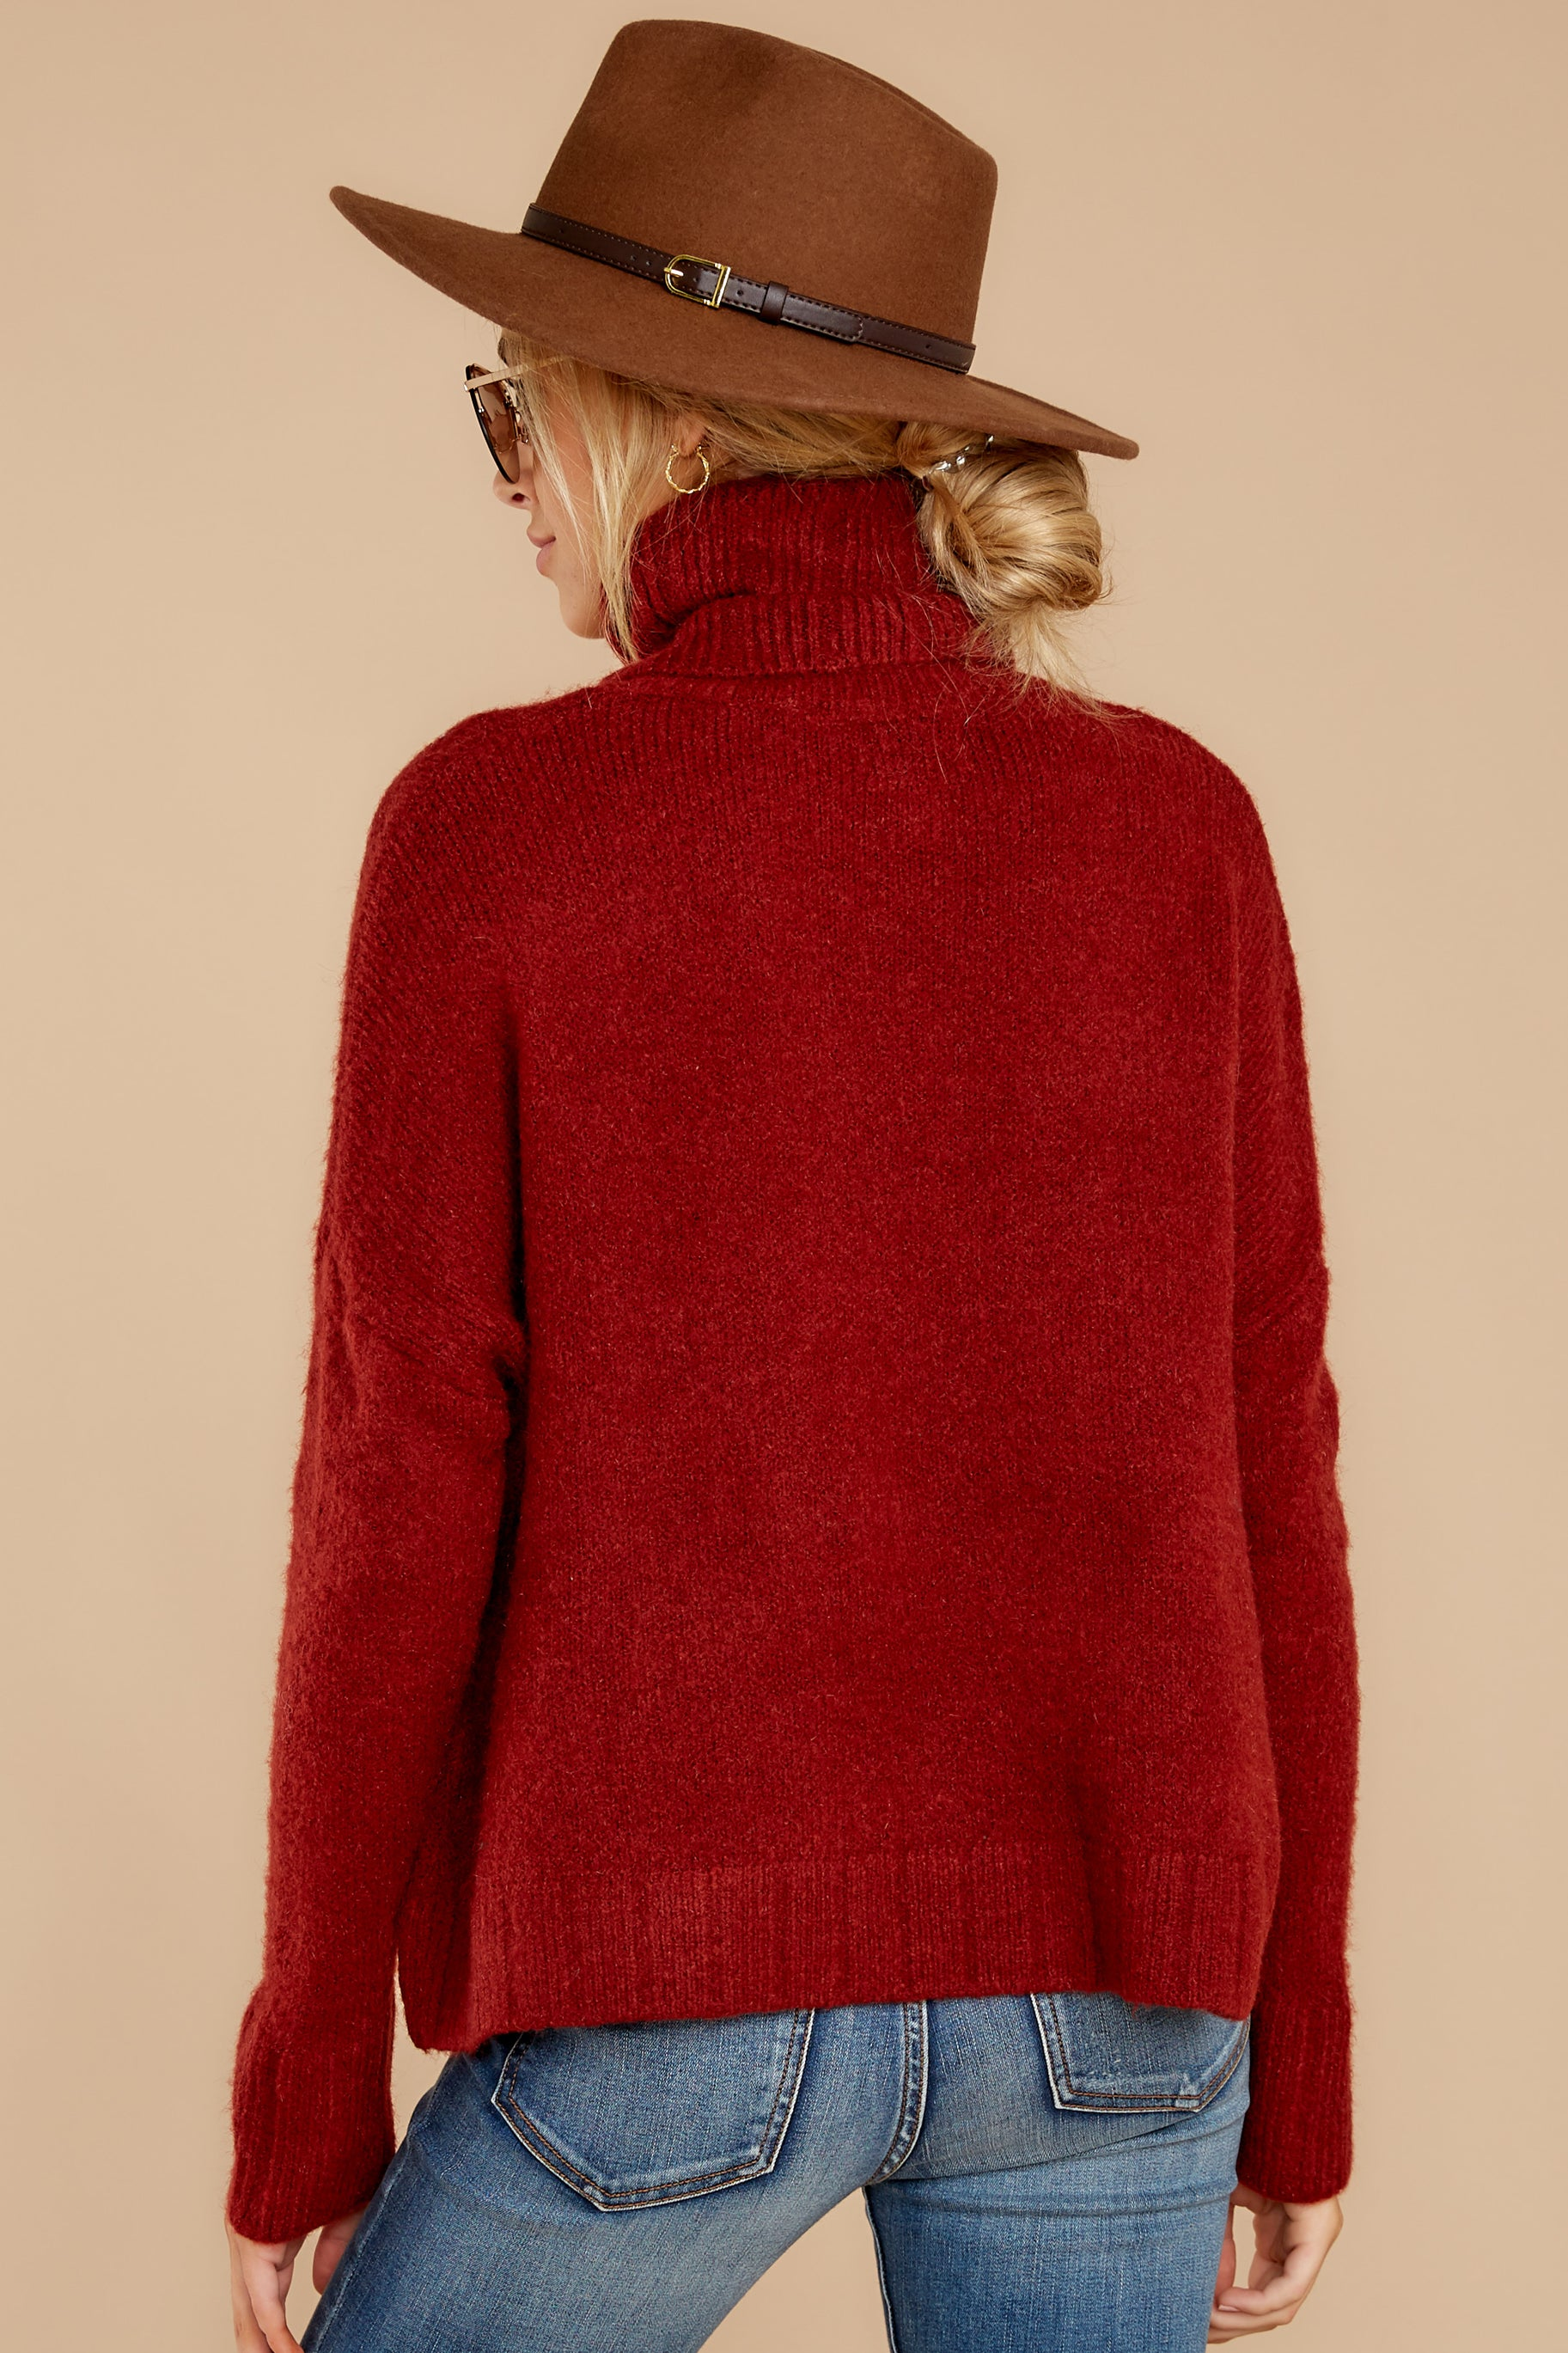 4 Say Anything Brick Red Turtleneck Sweater at reddress.com